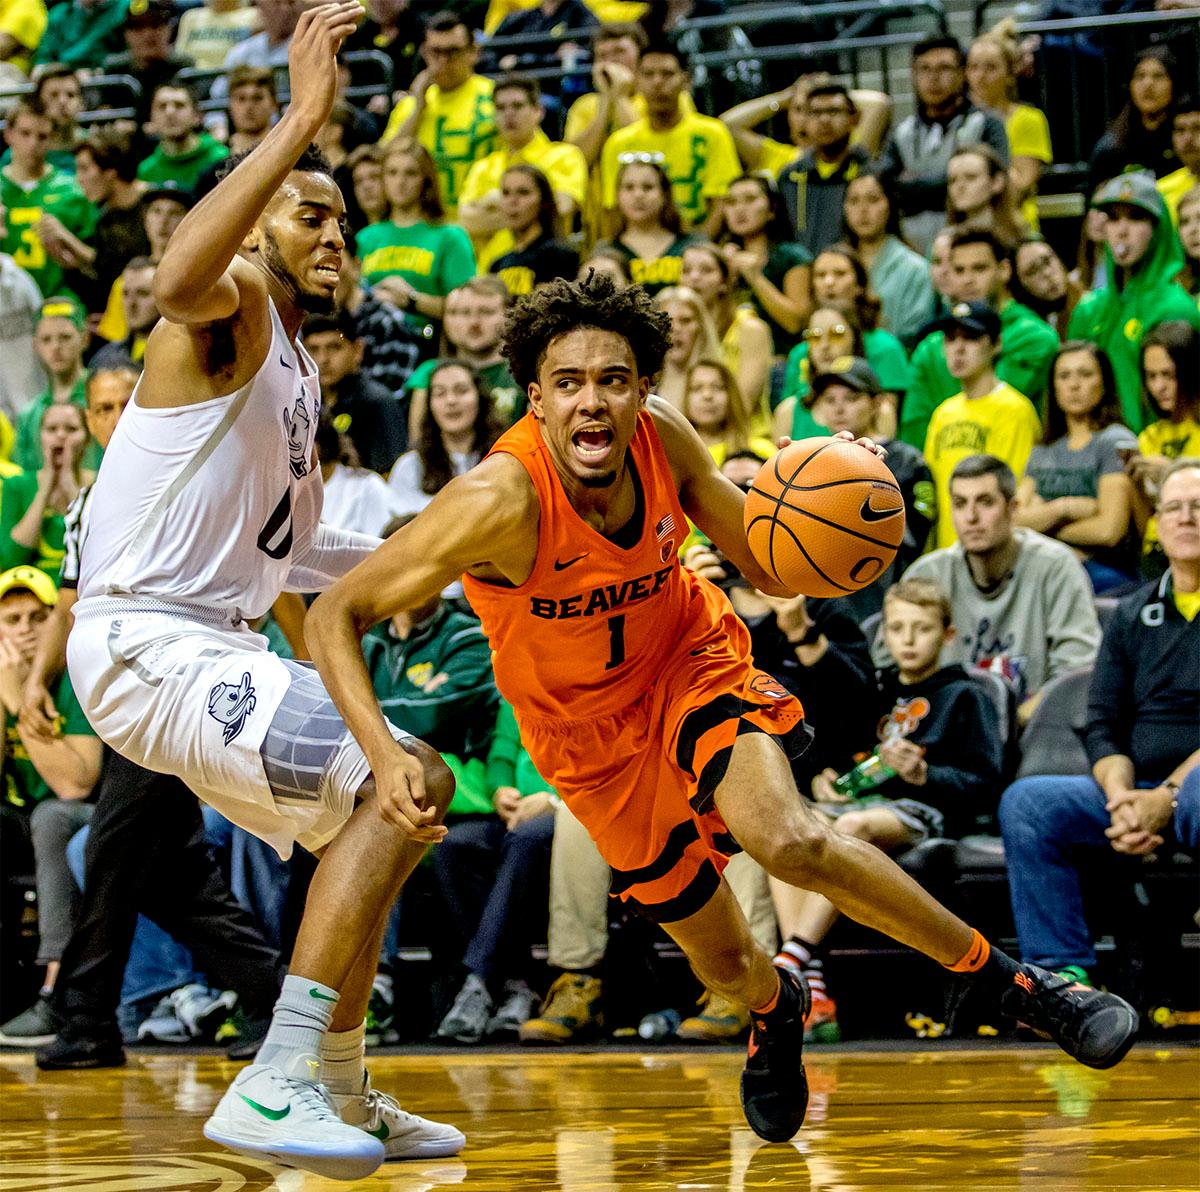 The Beaver's Stephen Thompson Jr. (#1) makes a run for the basket. The Ducks defeated the Beavers in the civil war game, 66-57, at Matthew Knight Arena on Saturday night. Elijah Brown scored a game high of 20 points with 18 of the points coming in the first half, Paul White added 17 points. The Ducks are now 14-7 overall and 4-4 in conference play. The Ducks will next face California on Thursday Feb. 1 at 6:00 p.m. Photo by August Frank, Oregon News Lab